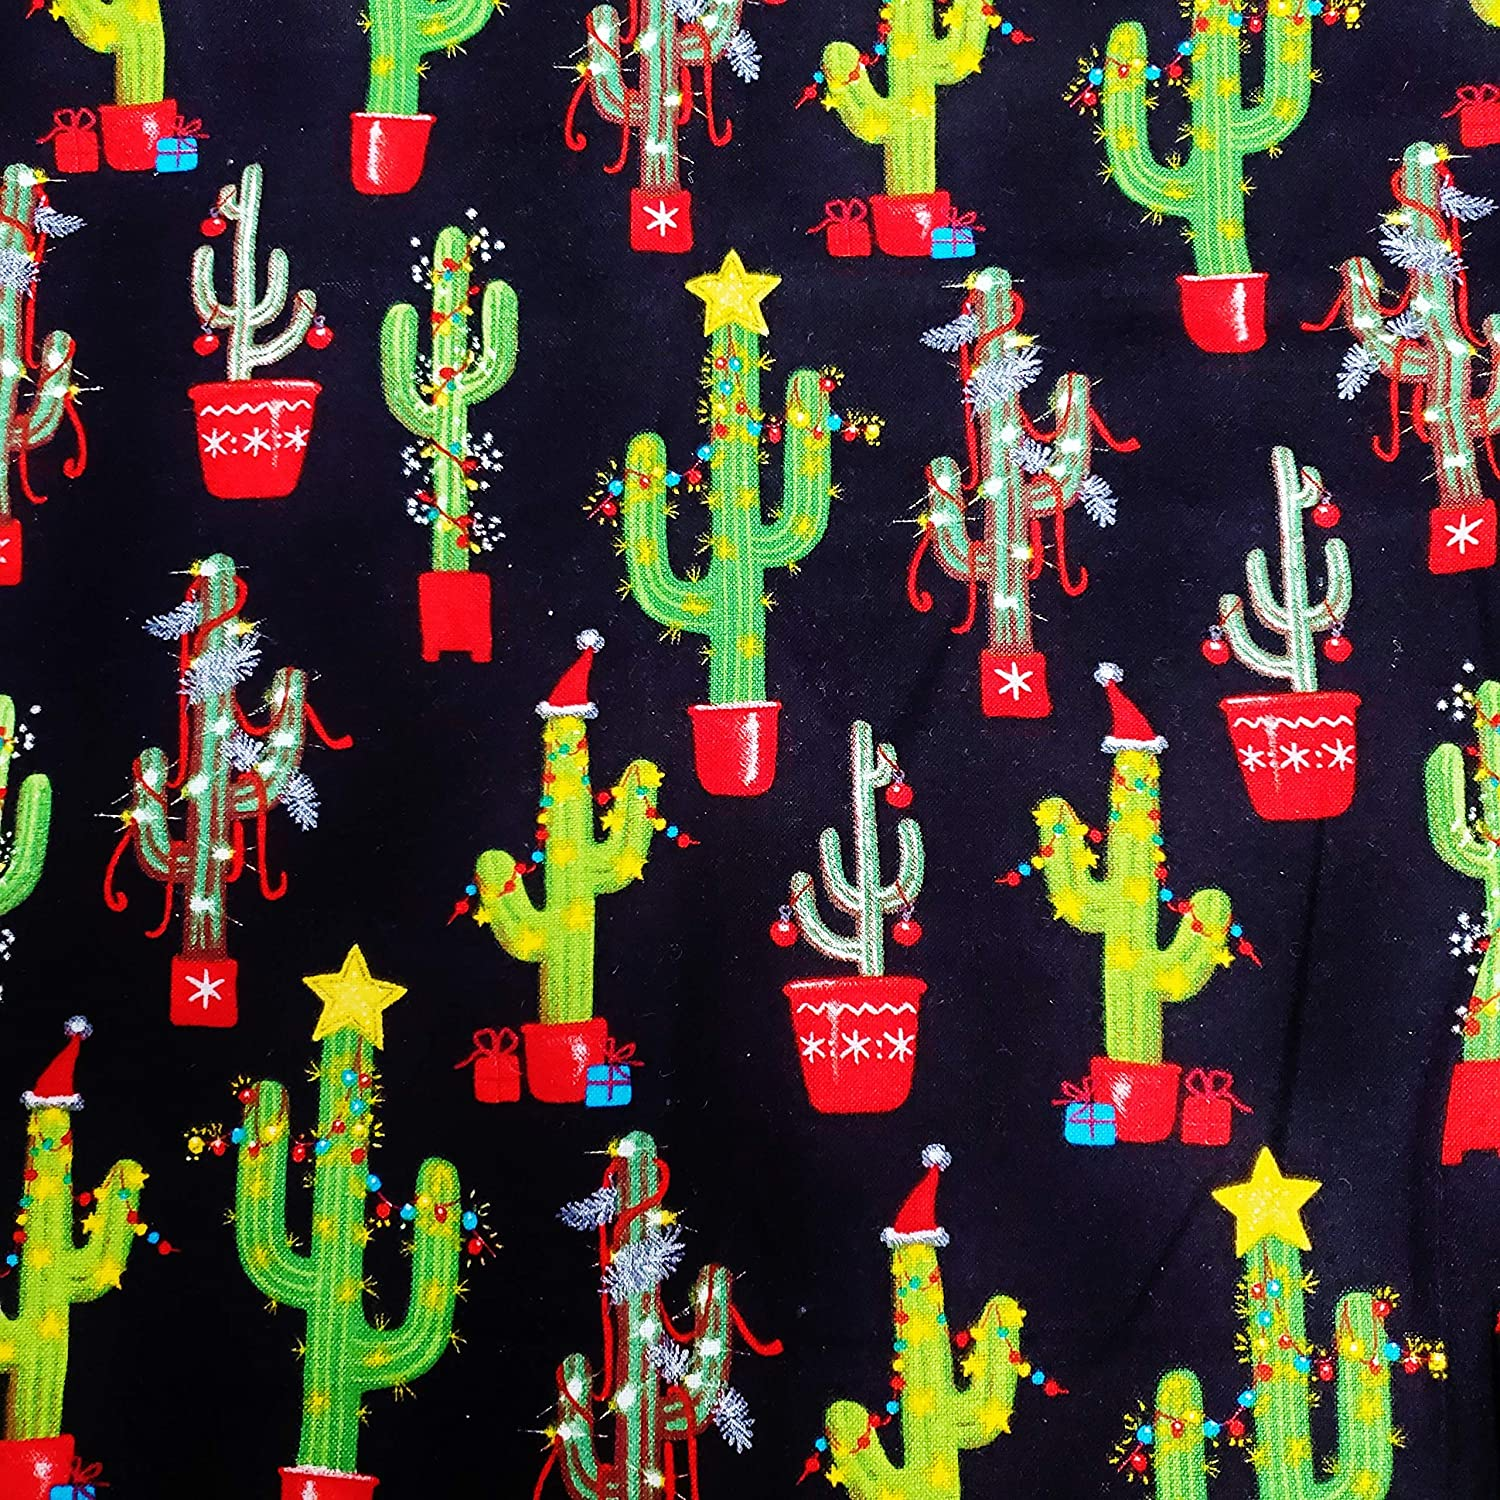 Fat Quarter - Super Special SALE held Christmas Decorated Design Flannel Popular shop is the lowest price challenge Cot Cactus 100%